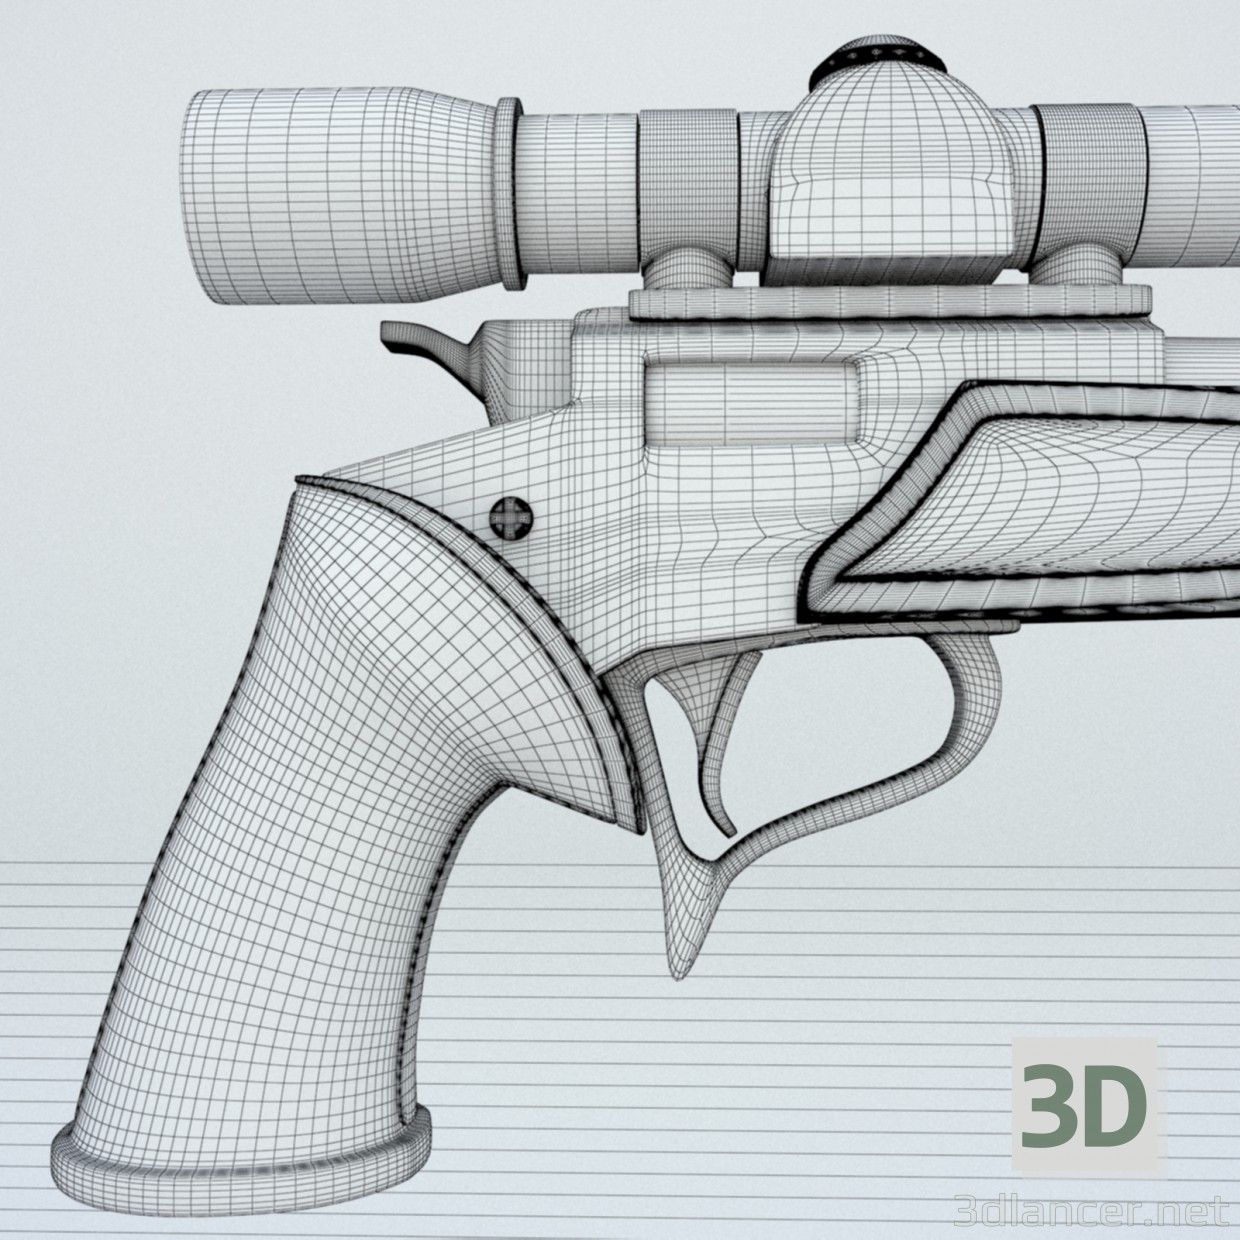 3d A gun with telescopic sight. Zone II with an optical sight. model buy - render